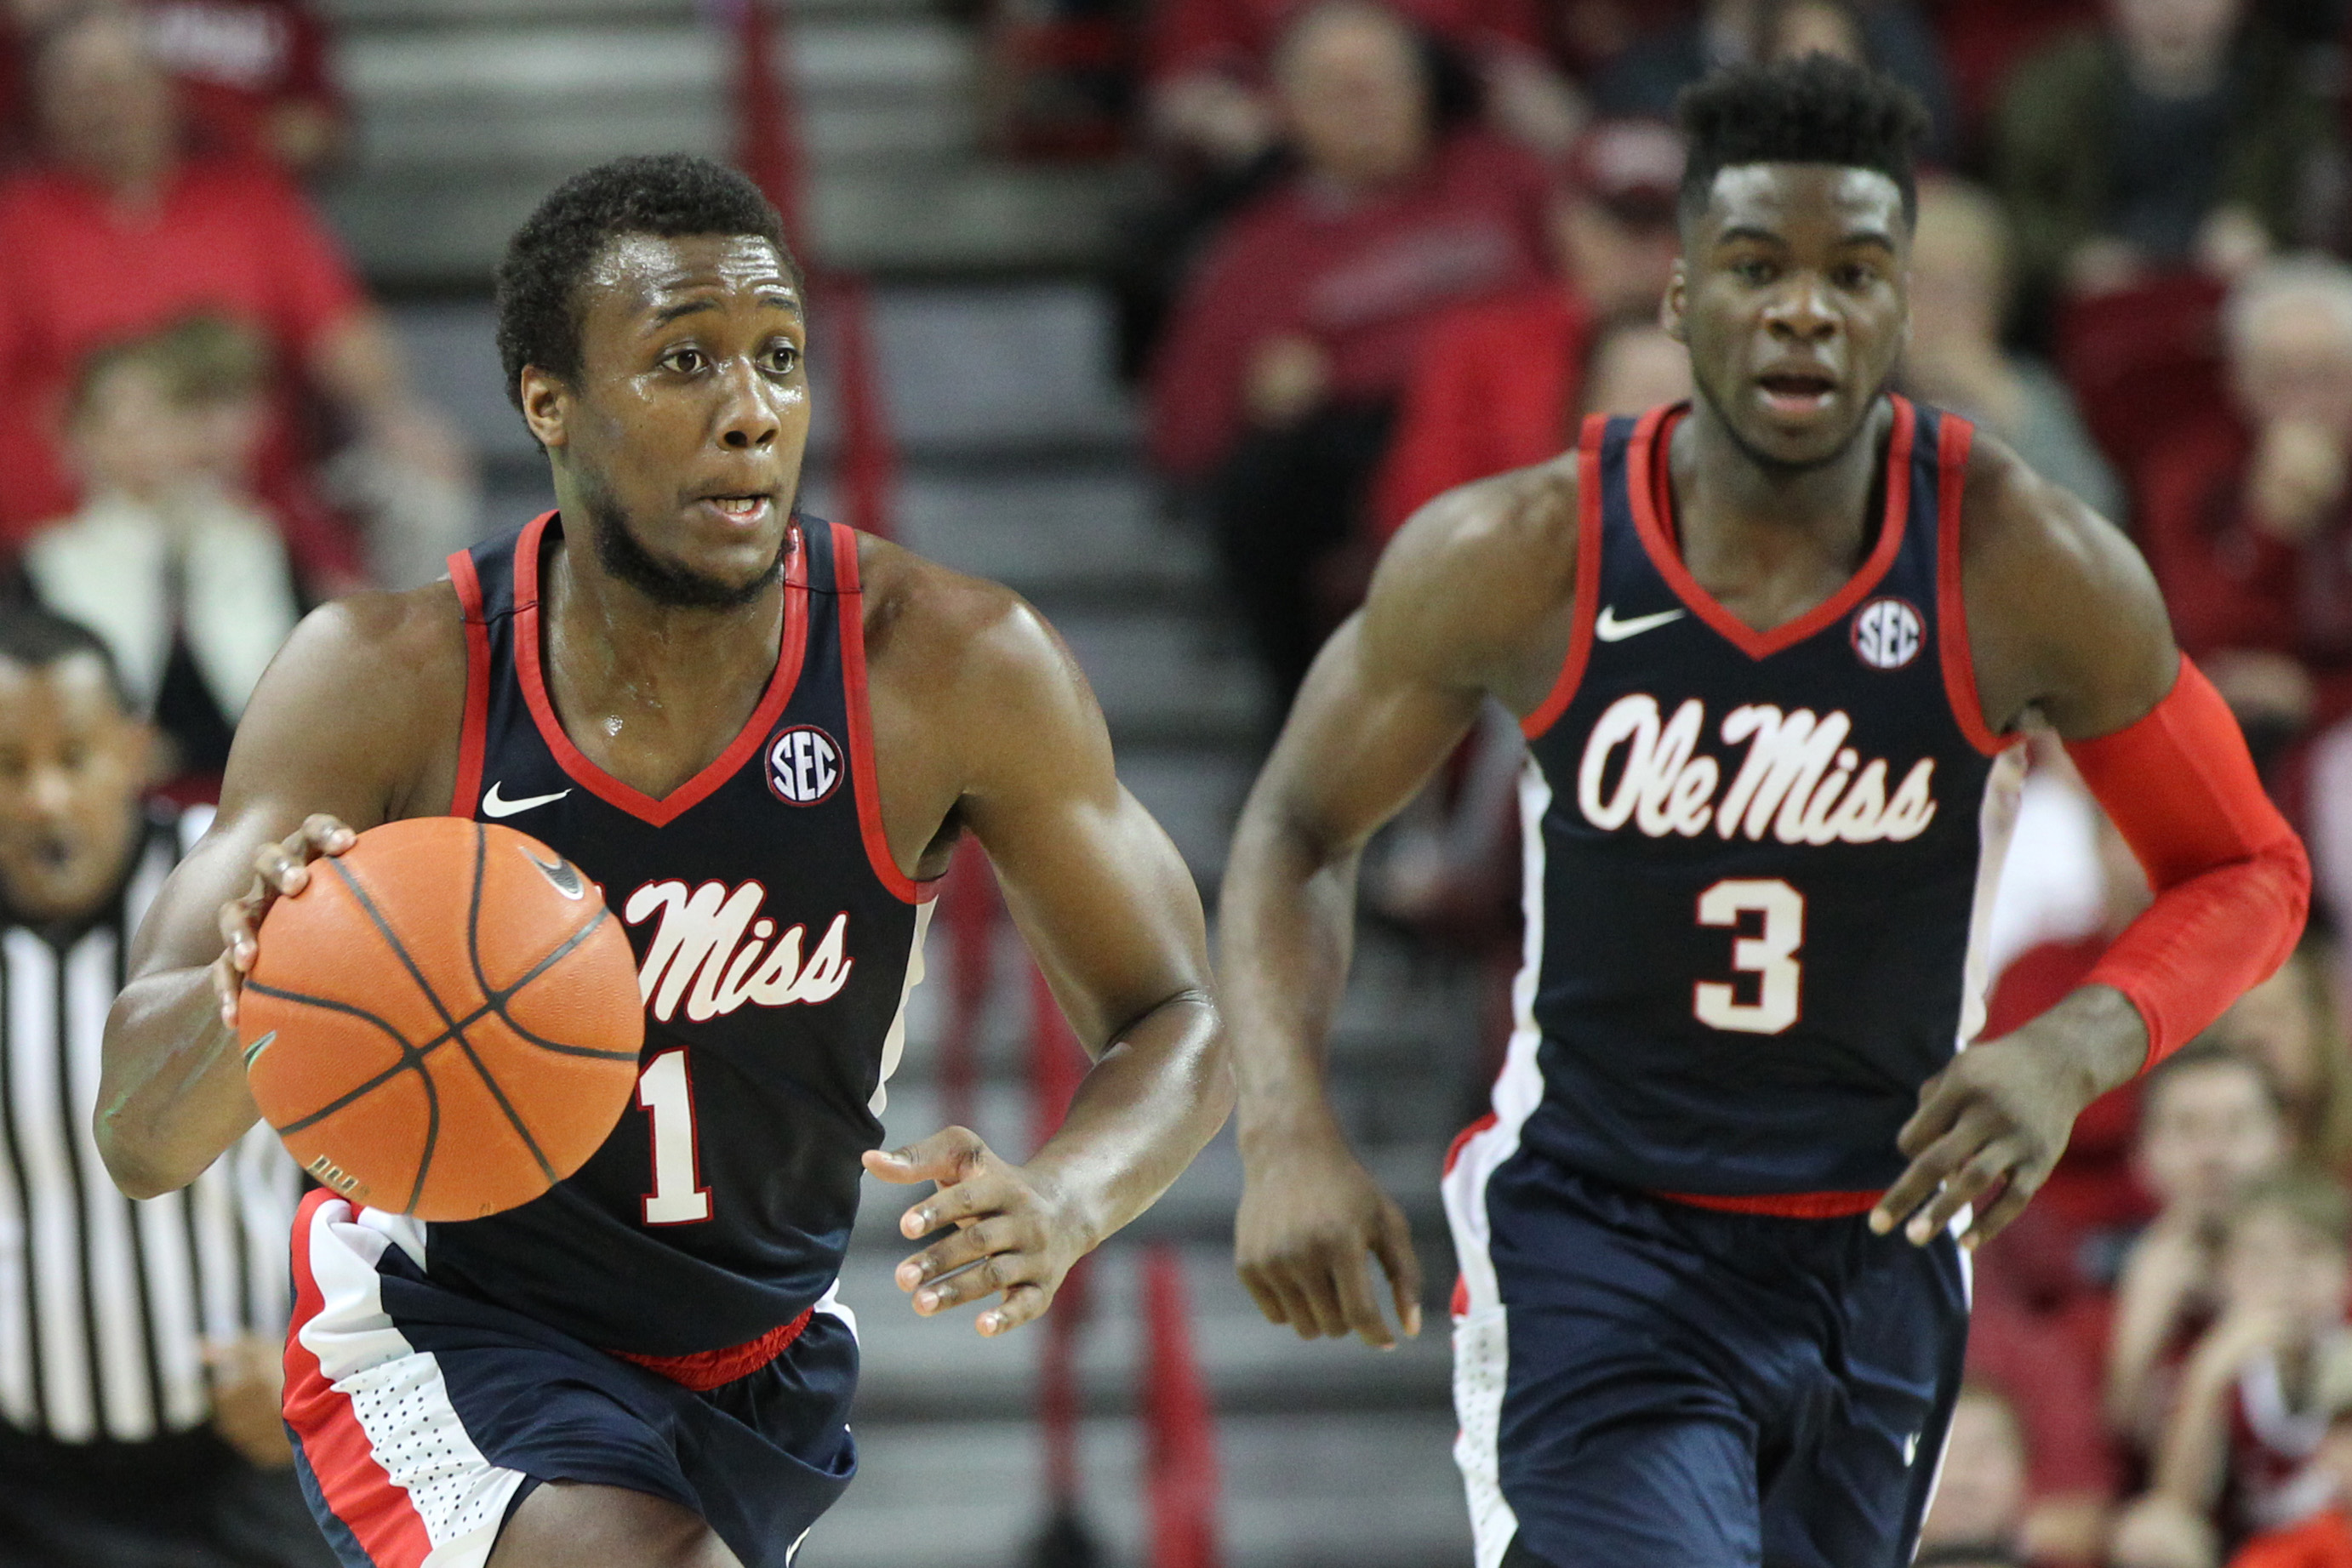 089187b0440 NIT Tournament: 5th Seed Ole Miss Faces 4th Seed Monmouth - ESPN ...